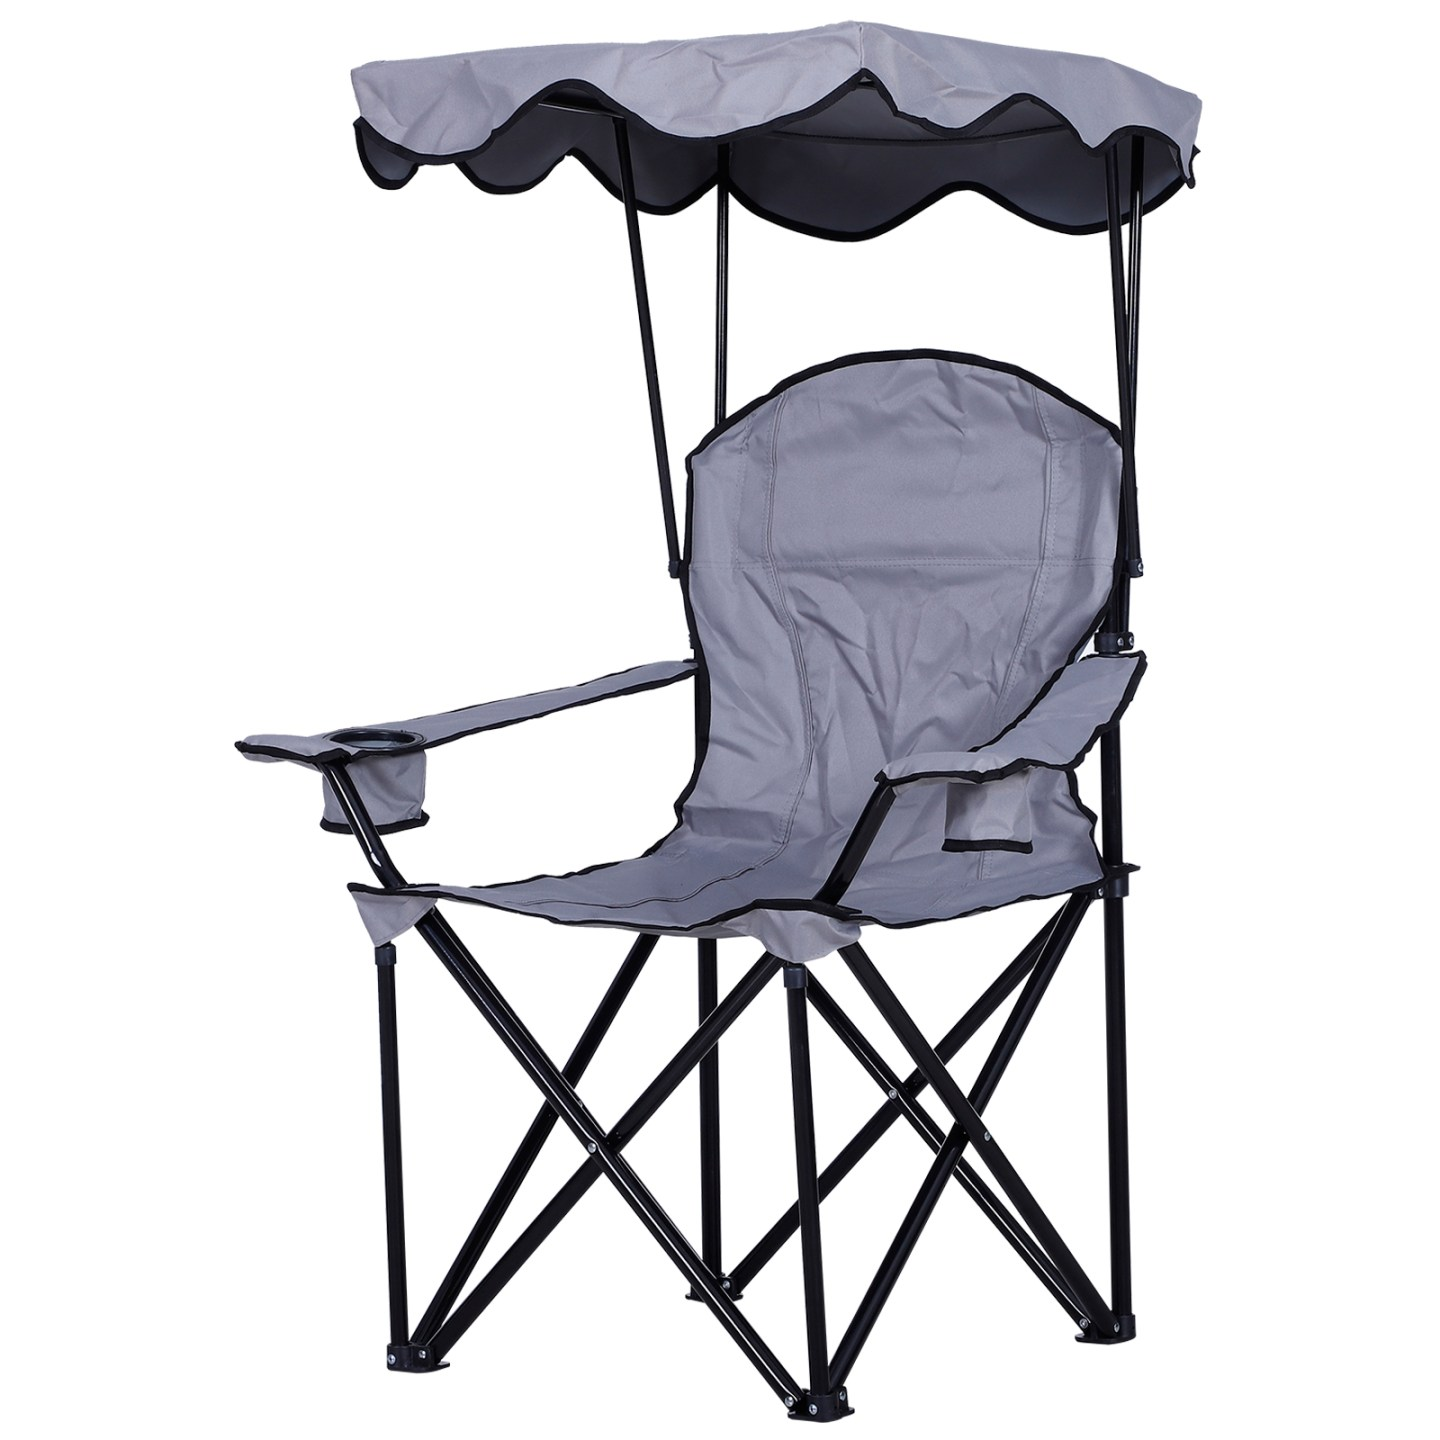 Outsunny Oxford Sports Folding Metal Camping Chair with an Overhead Shade Canopy & an Included Side Cup Holder Grey